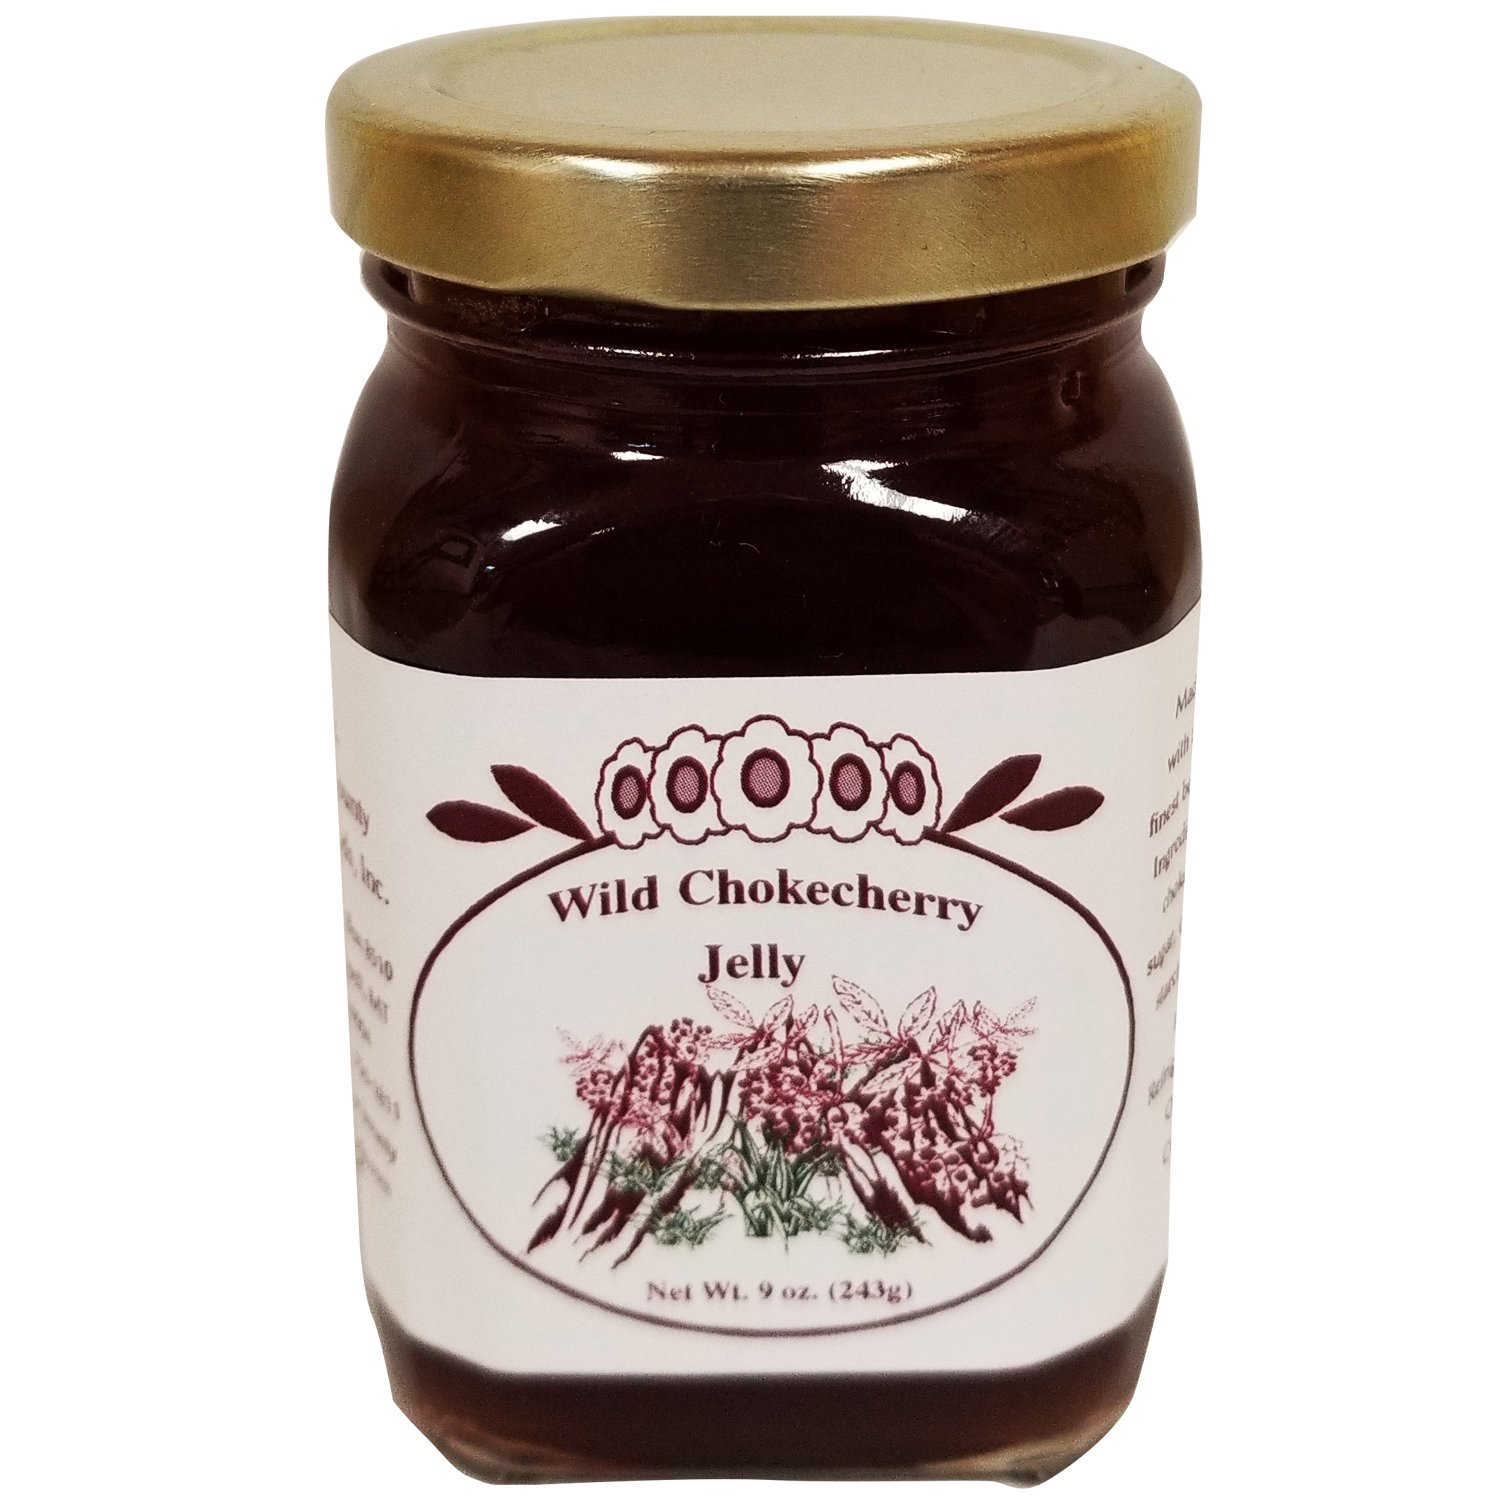 Chokecherry Jelly 9oz Fresh Real Wild Montana Grown from Bounty Foods Natural Fresh Real Fruits & Herbs Gluten-Free Non-GMO Toppings Dessert Fillings Breakfast Essentials (Chokecherry Jelly, 9oz)